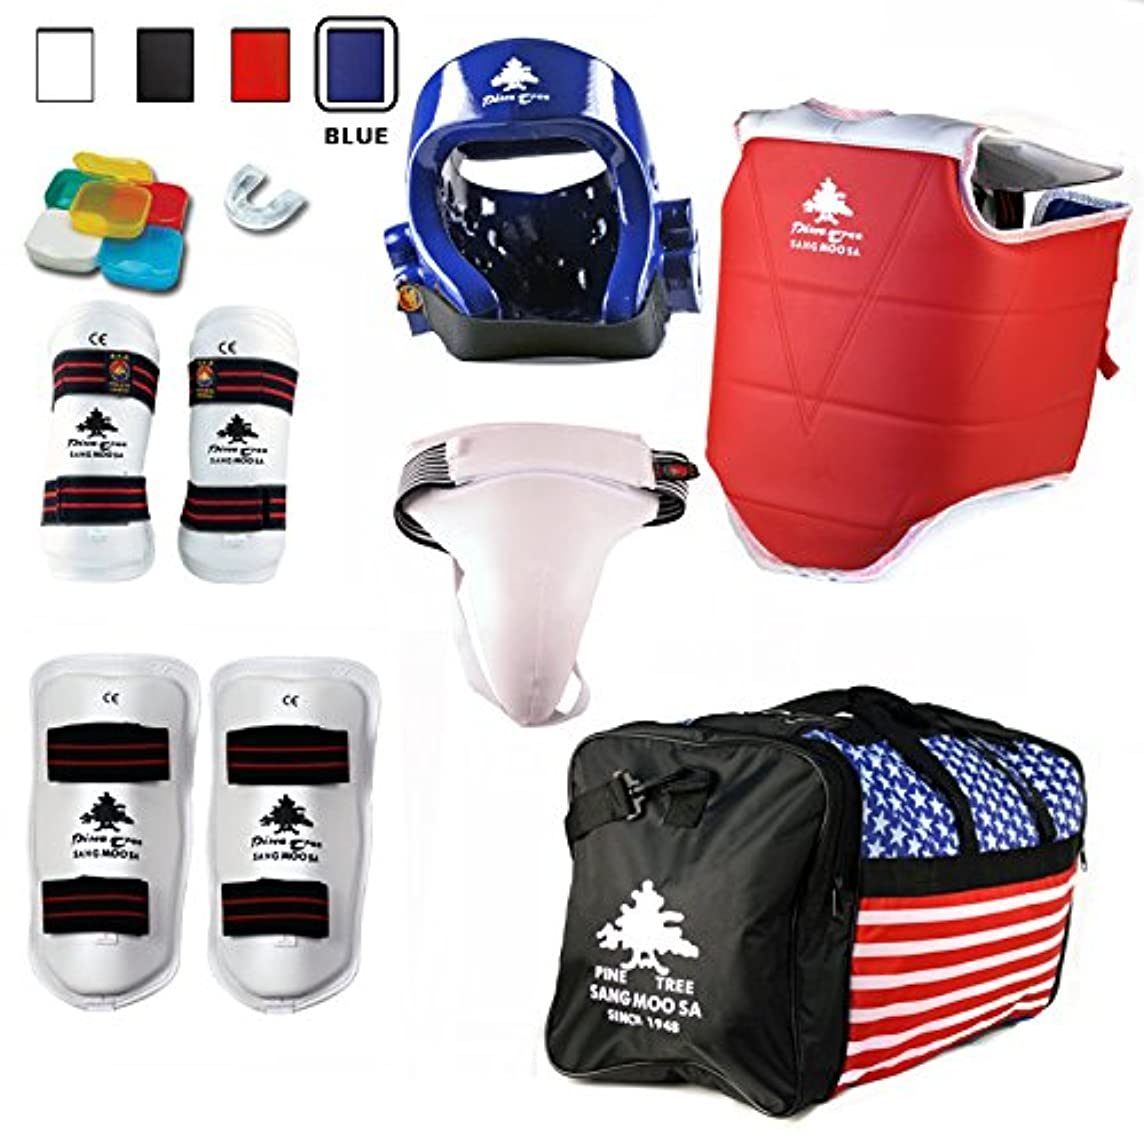 Pine Tree Complete Vinyl Martial Arts Sparring Gear Set with Bag, Shin, Groin